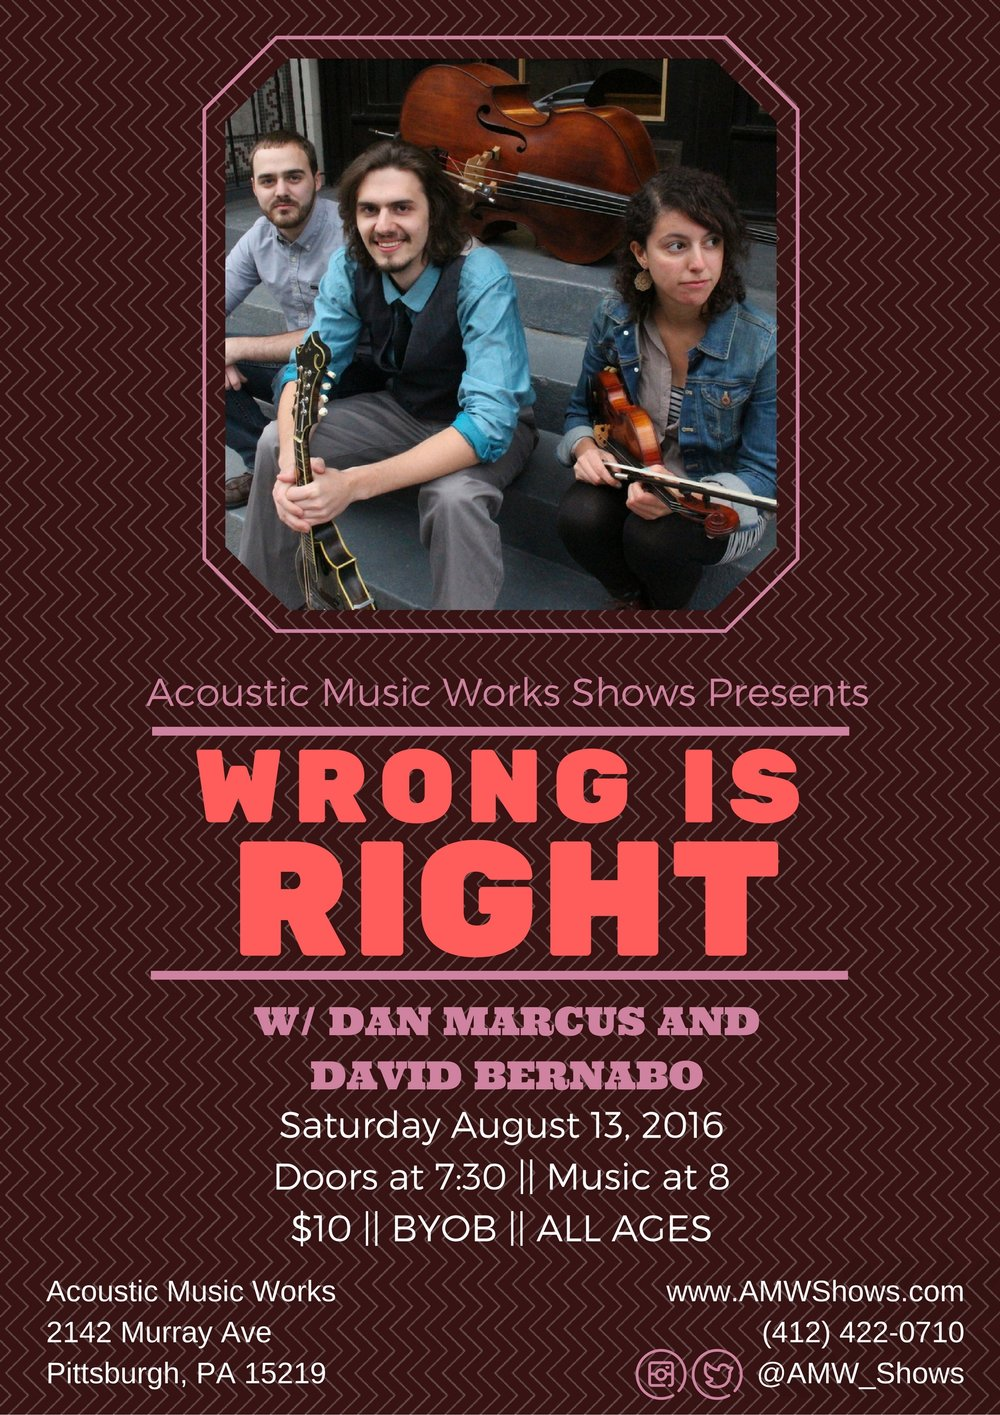 wrong is right poster.jpg